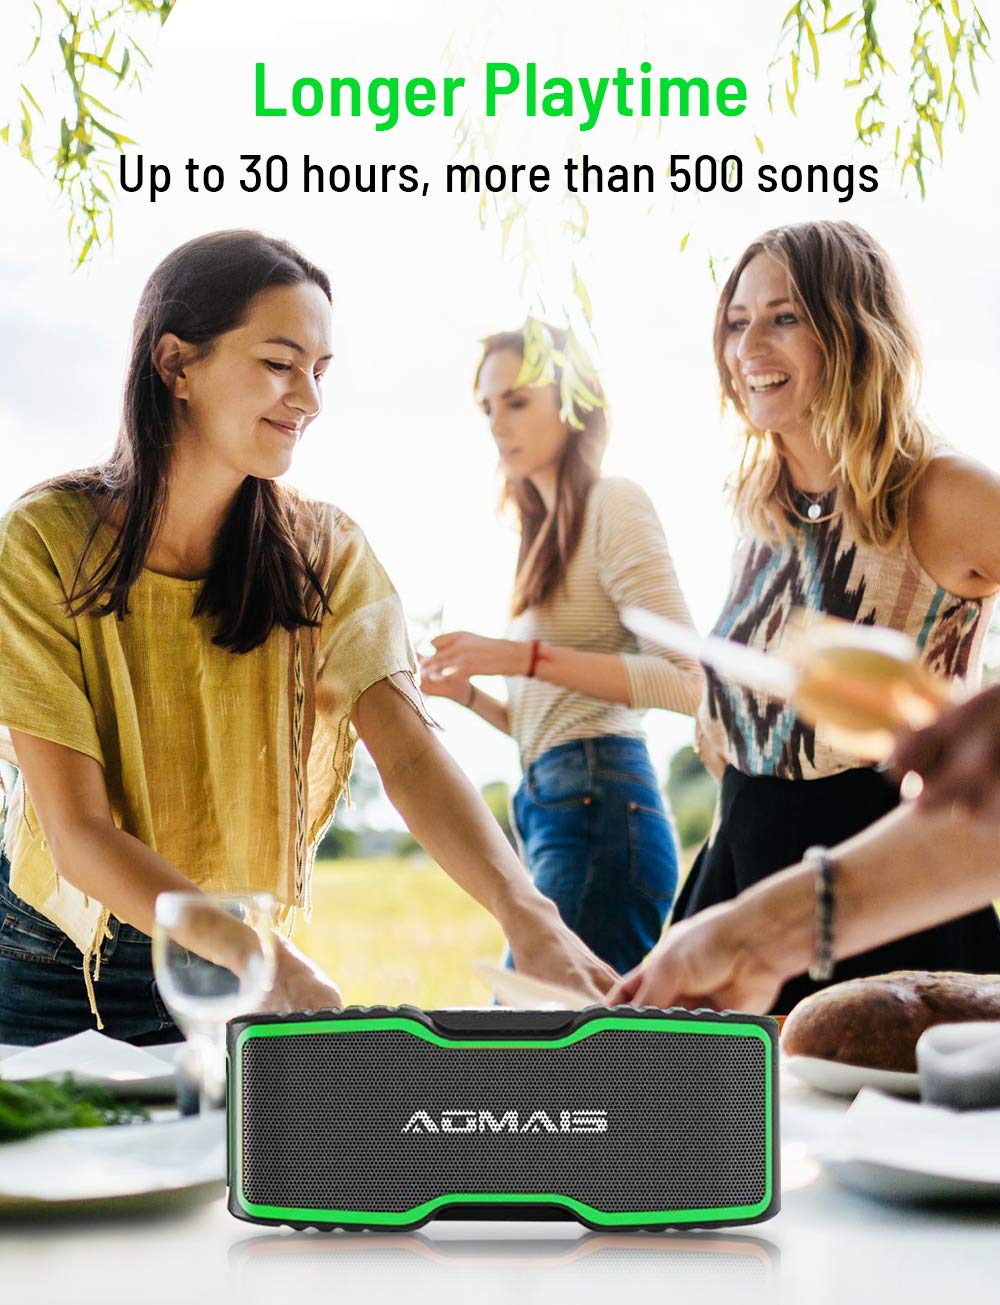 99ft Wireless Range for Travel IPX7 Waterproof Aomais Sport II+ Bluetooth Speakers Pool 30H Playtime Portable Outdoor Speaker 20W Clear Stereo Sound with Richer Bass Party Update Version Beach